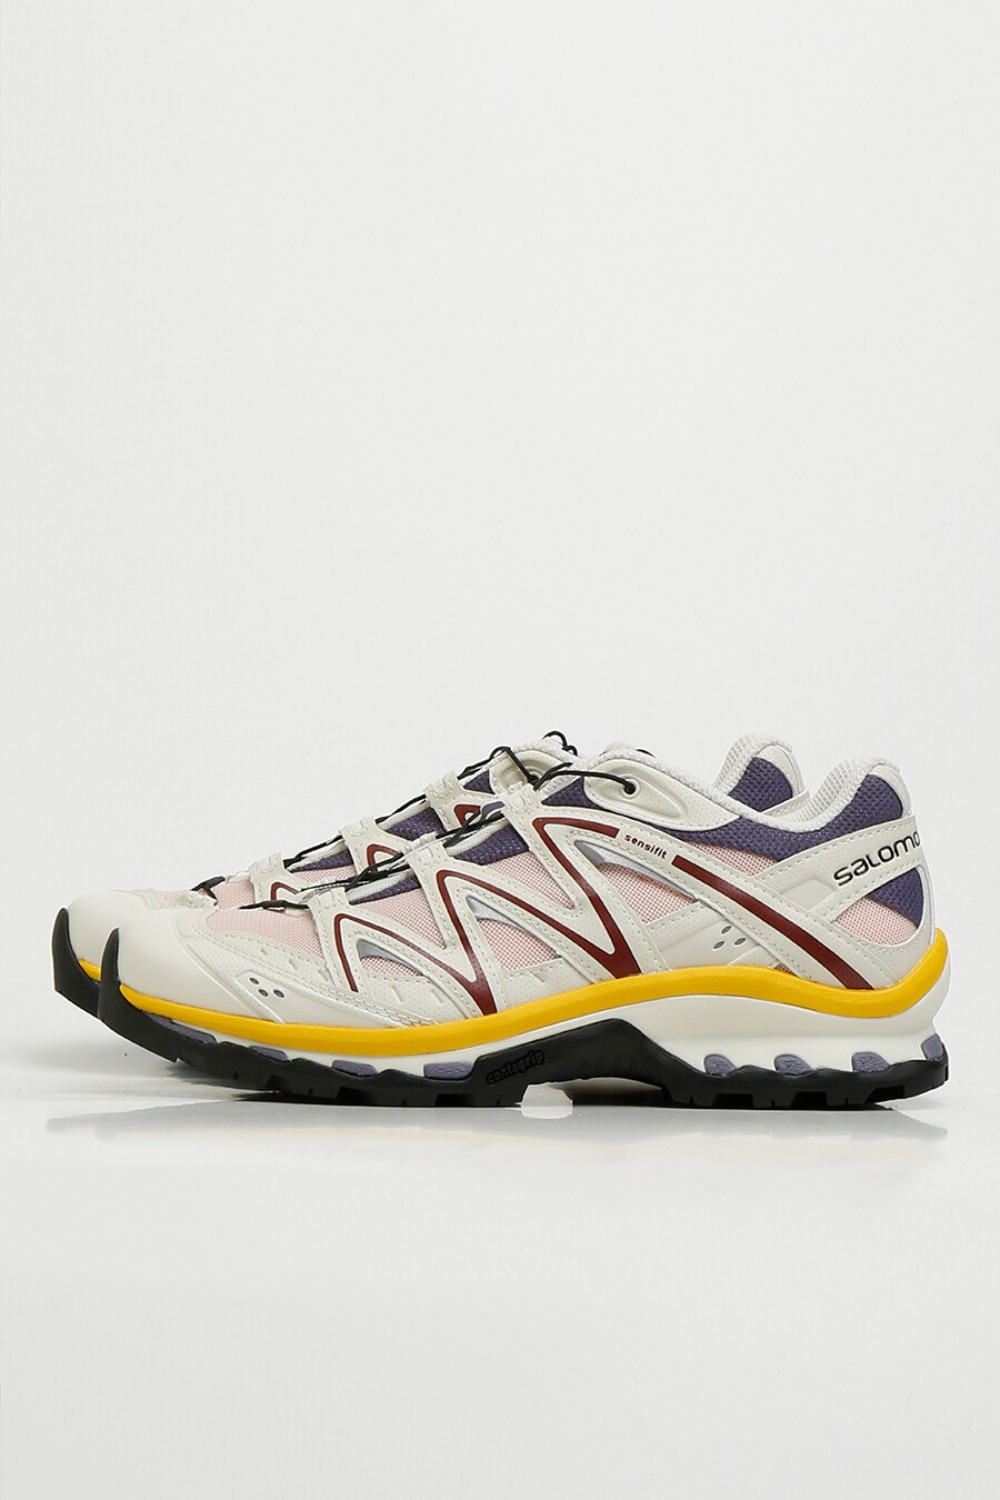 XT-QUEST ADV CADET/TROPICAL PEACH/VANILLA ICE (412553)